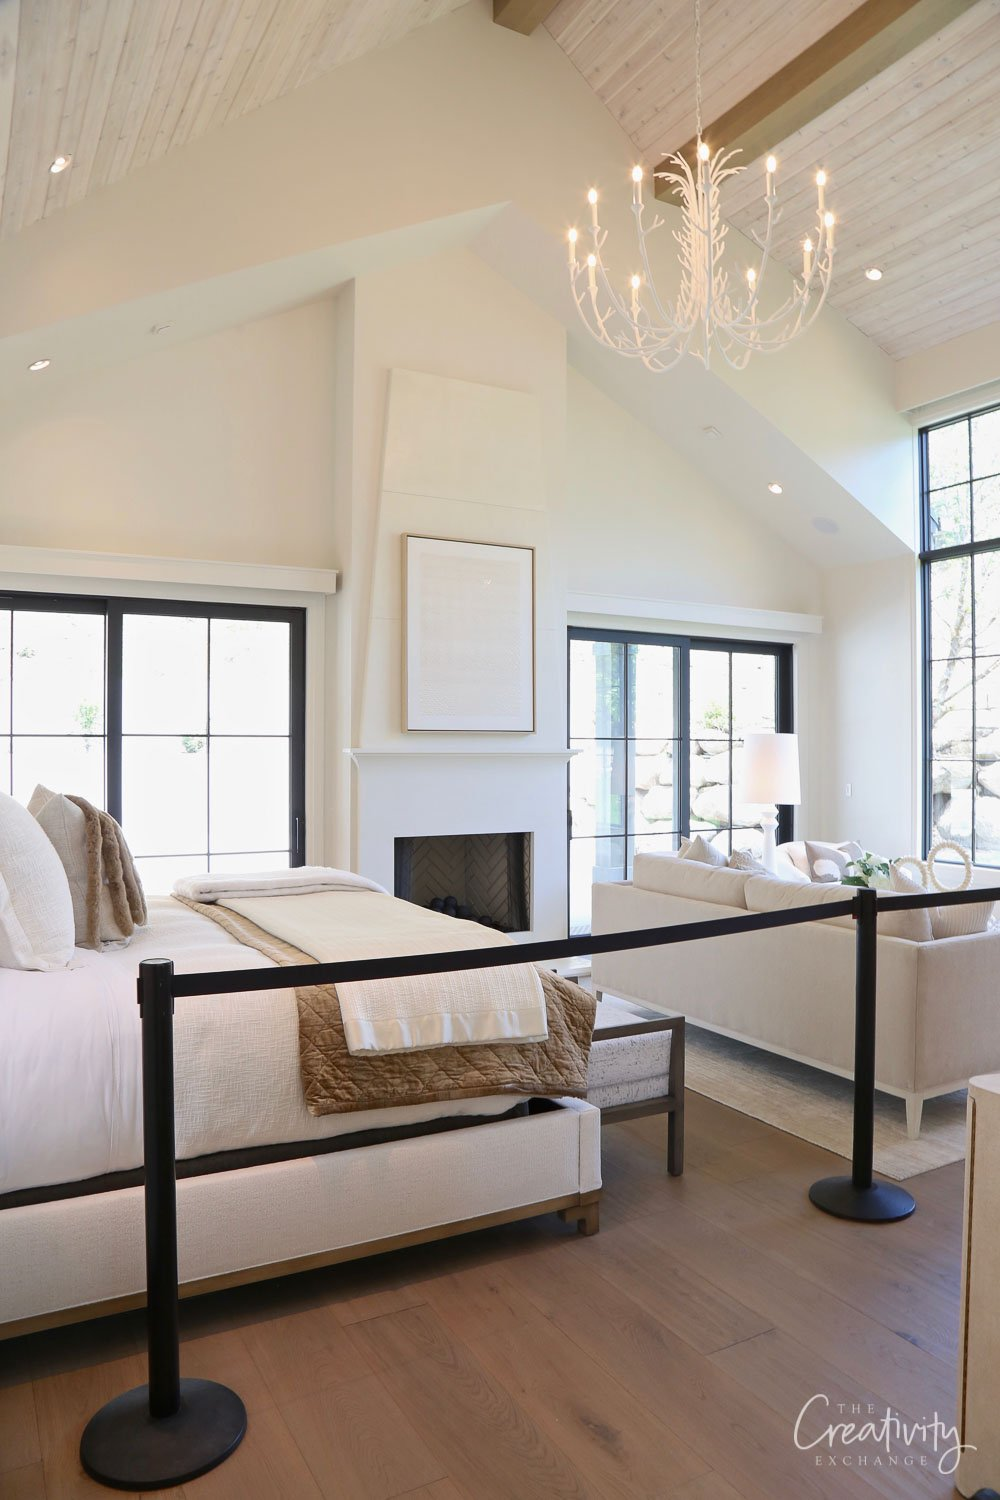 Primary bedroom with vaulted ceilings